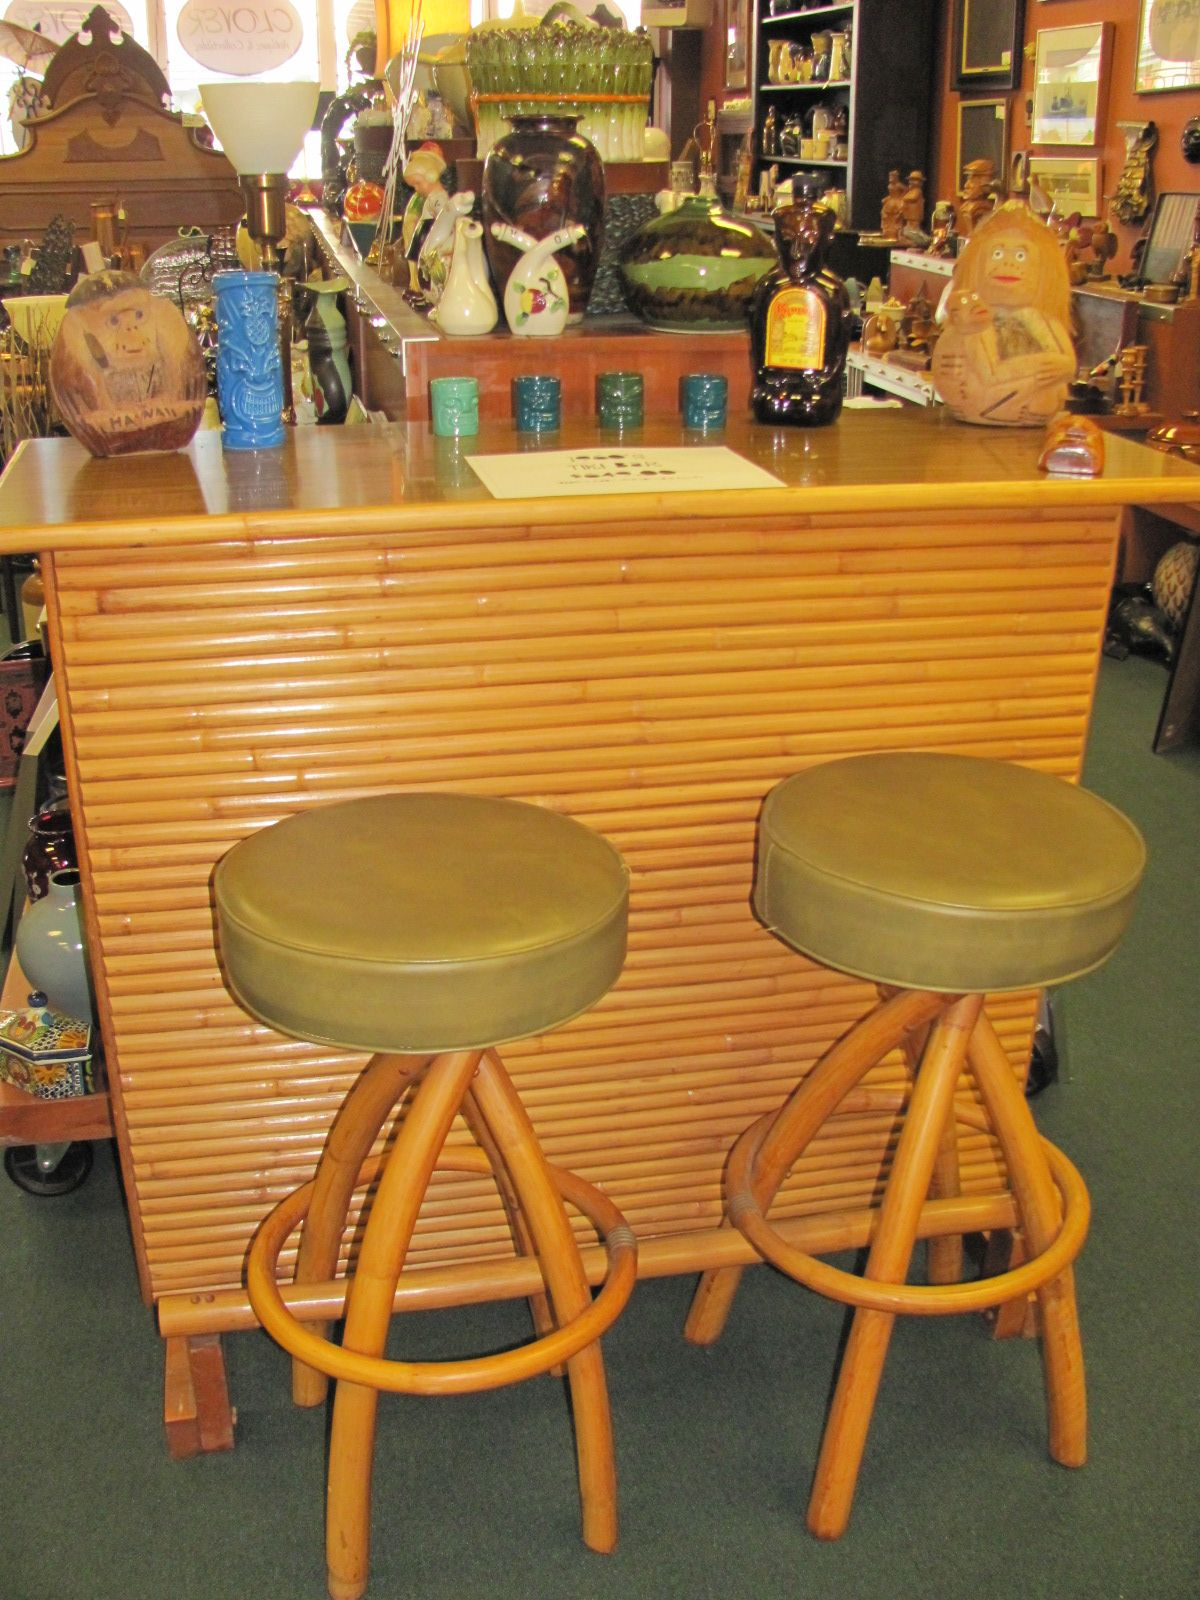 Vintage Tiki Bar I Like.. With Different Bar Stools Though